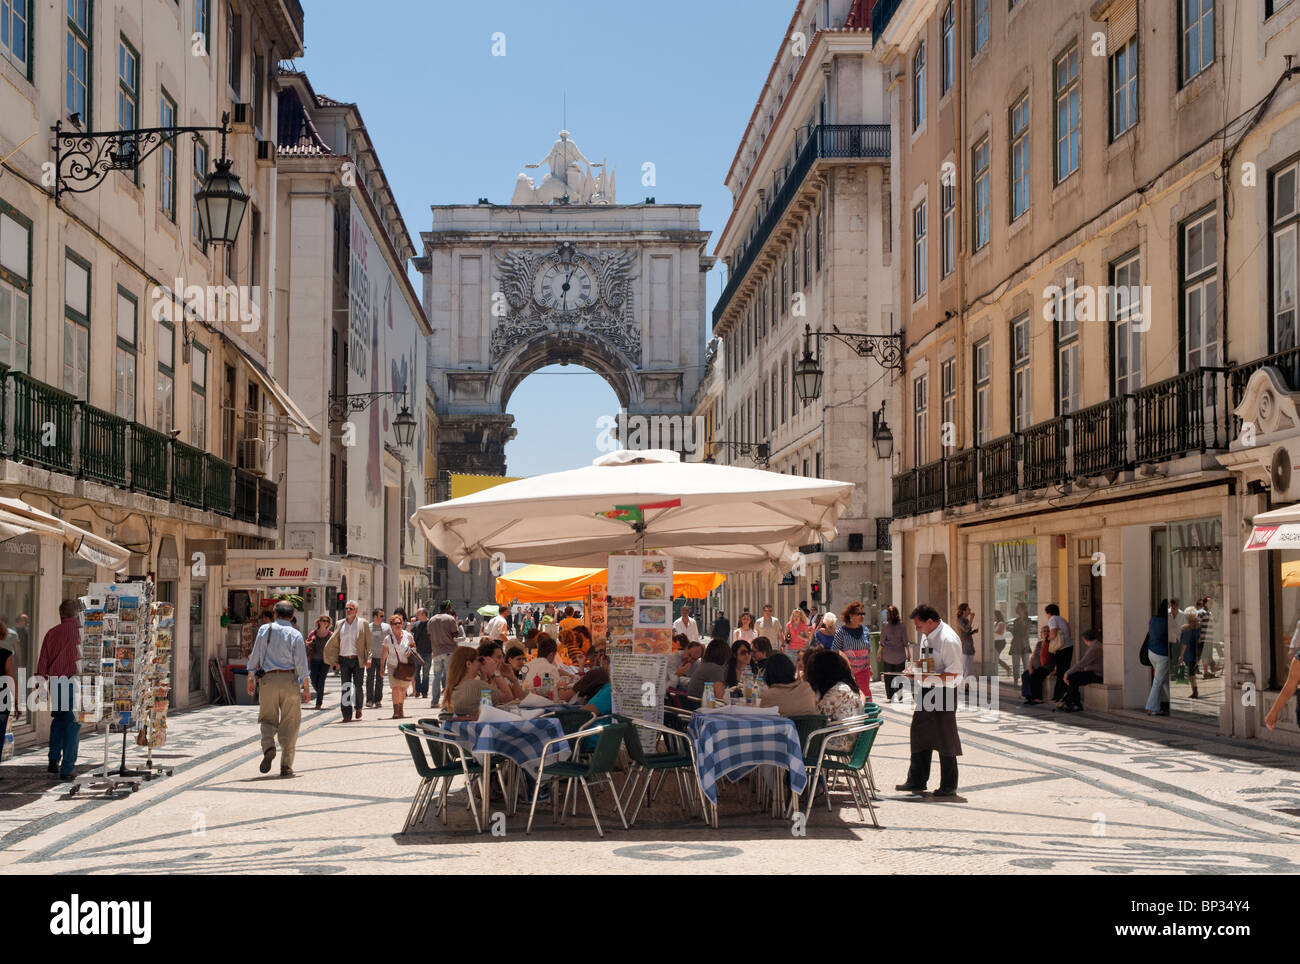 Portugal, Lisbon, The Baixa district, Rua Augusta at lunchtime with the triumphal arch - Stock Image